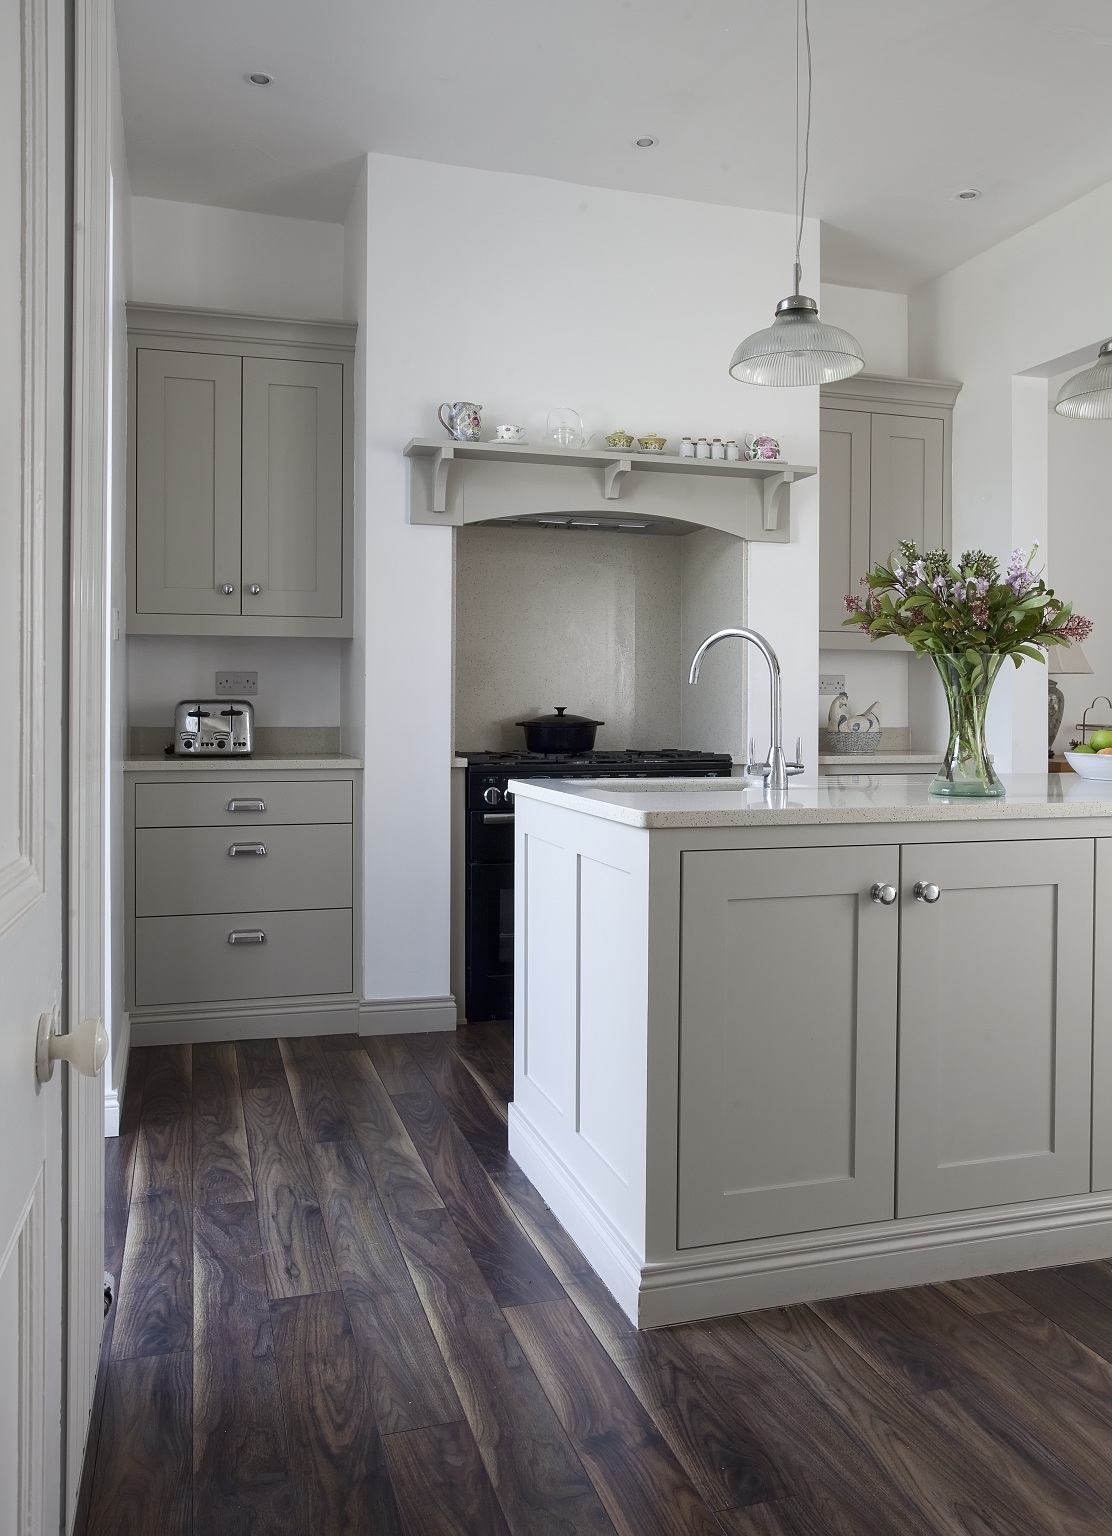 Farrow and Ball Hardwick White Modern Country kitchen